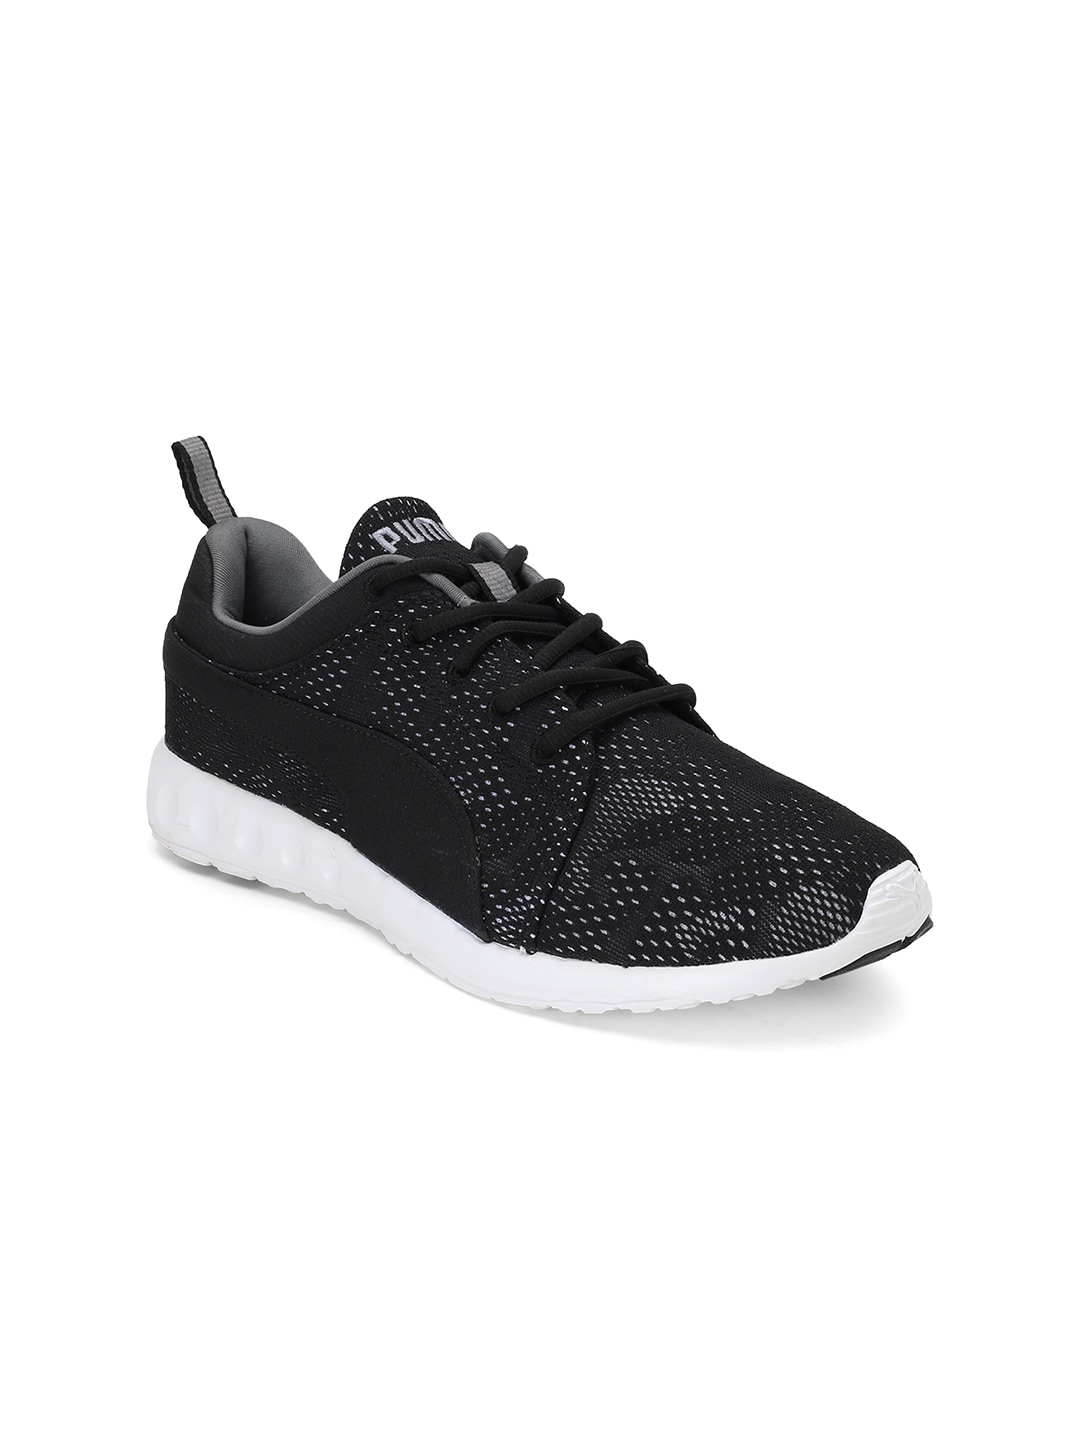 Men S Puma Lazy Insect Shoes